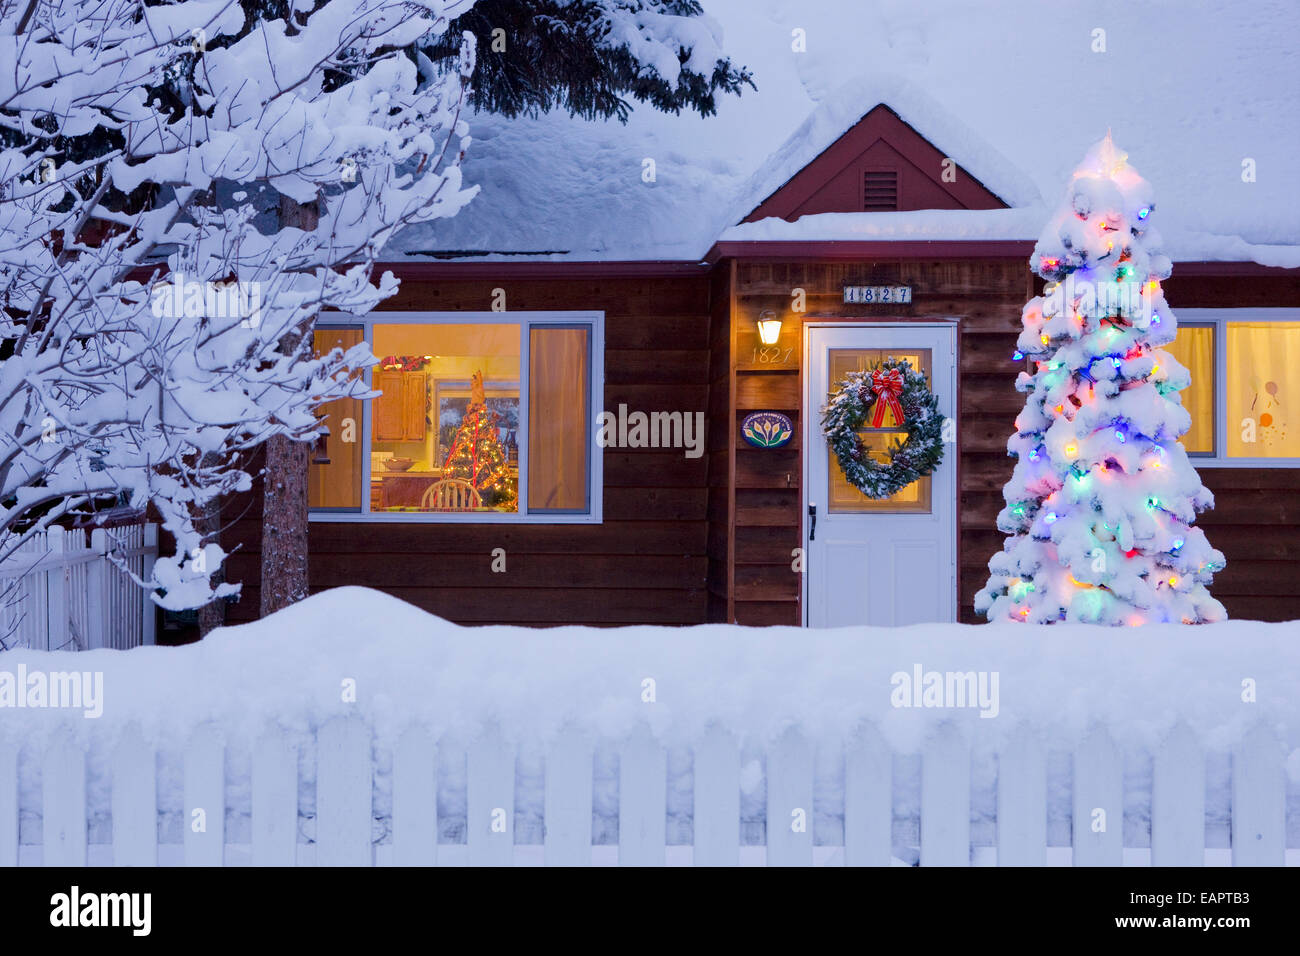 family home covered in snow with a lit christmas tree in the yard in